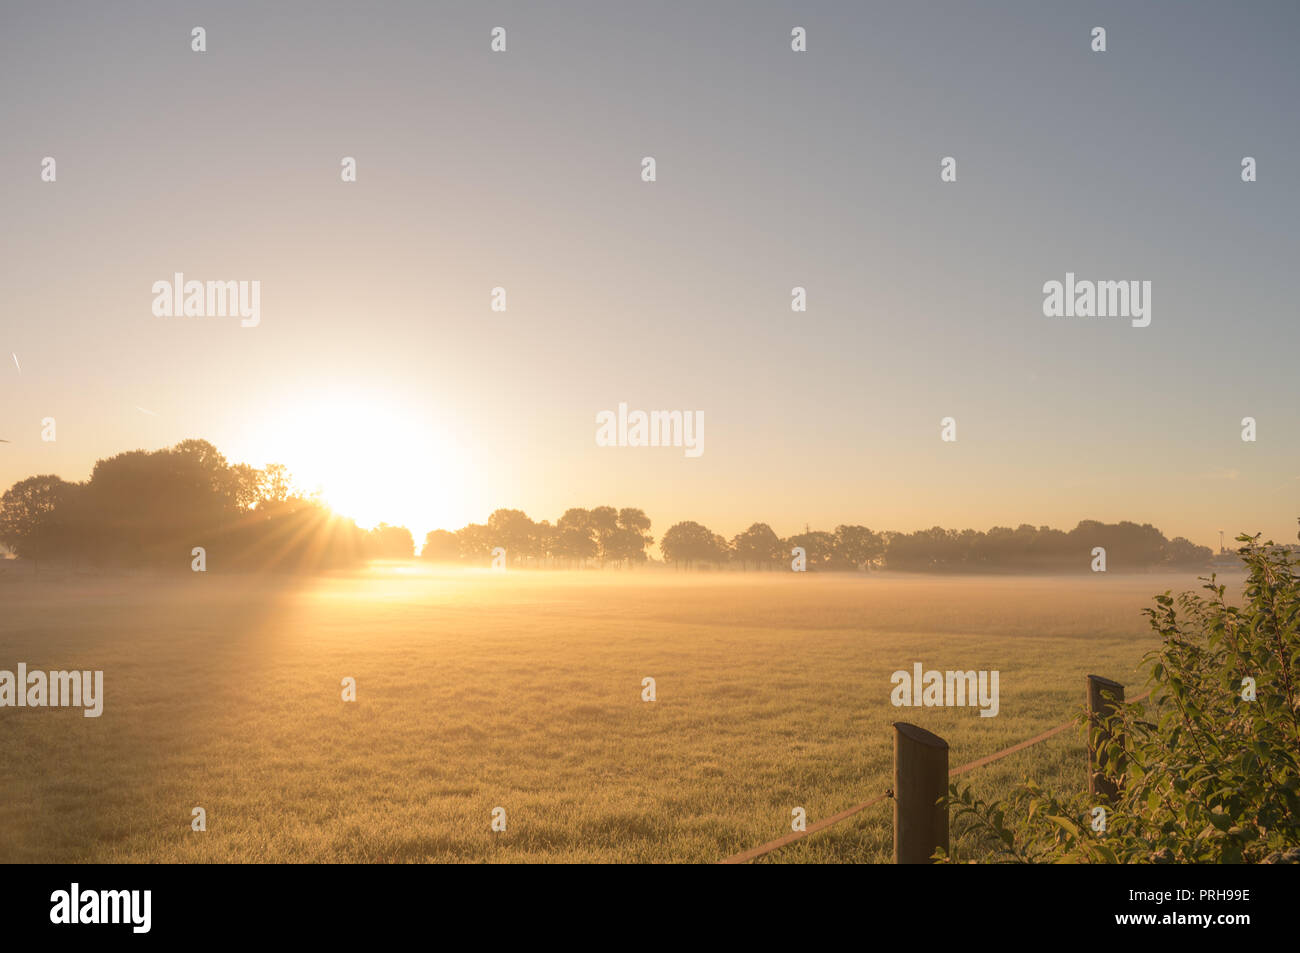 Gold shimmer of the morning sun in the country. Location: Germany, North Rhine - Westphalia, Borken - Marbeck - Stock Image